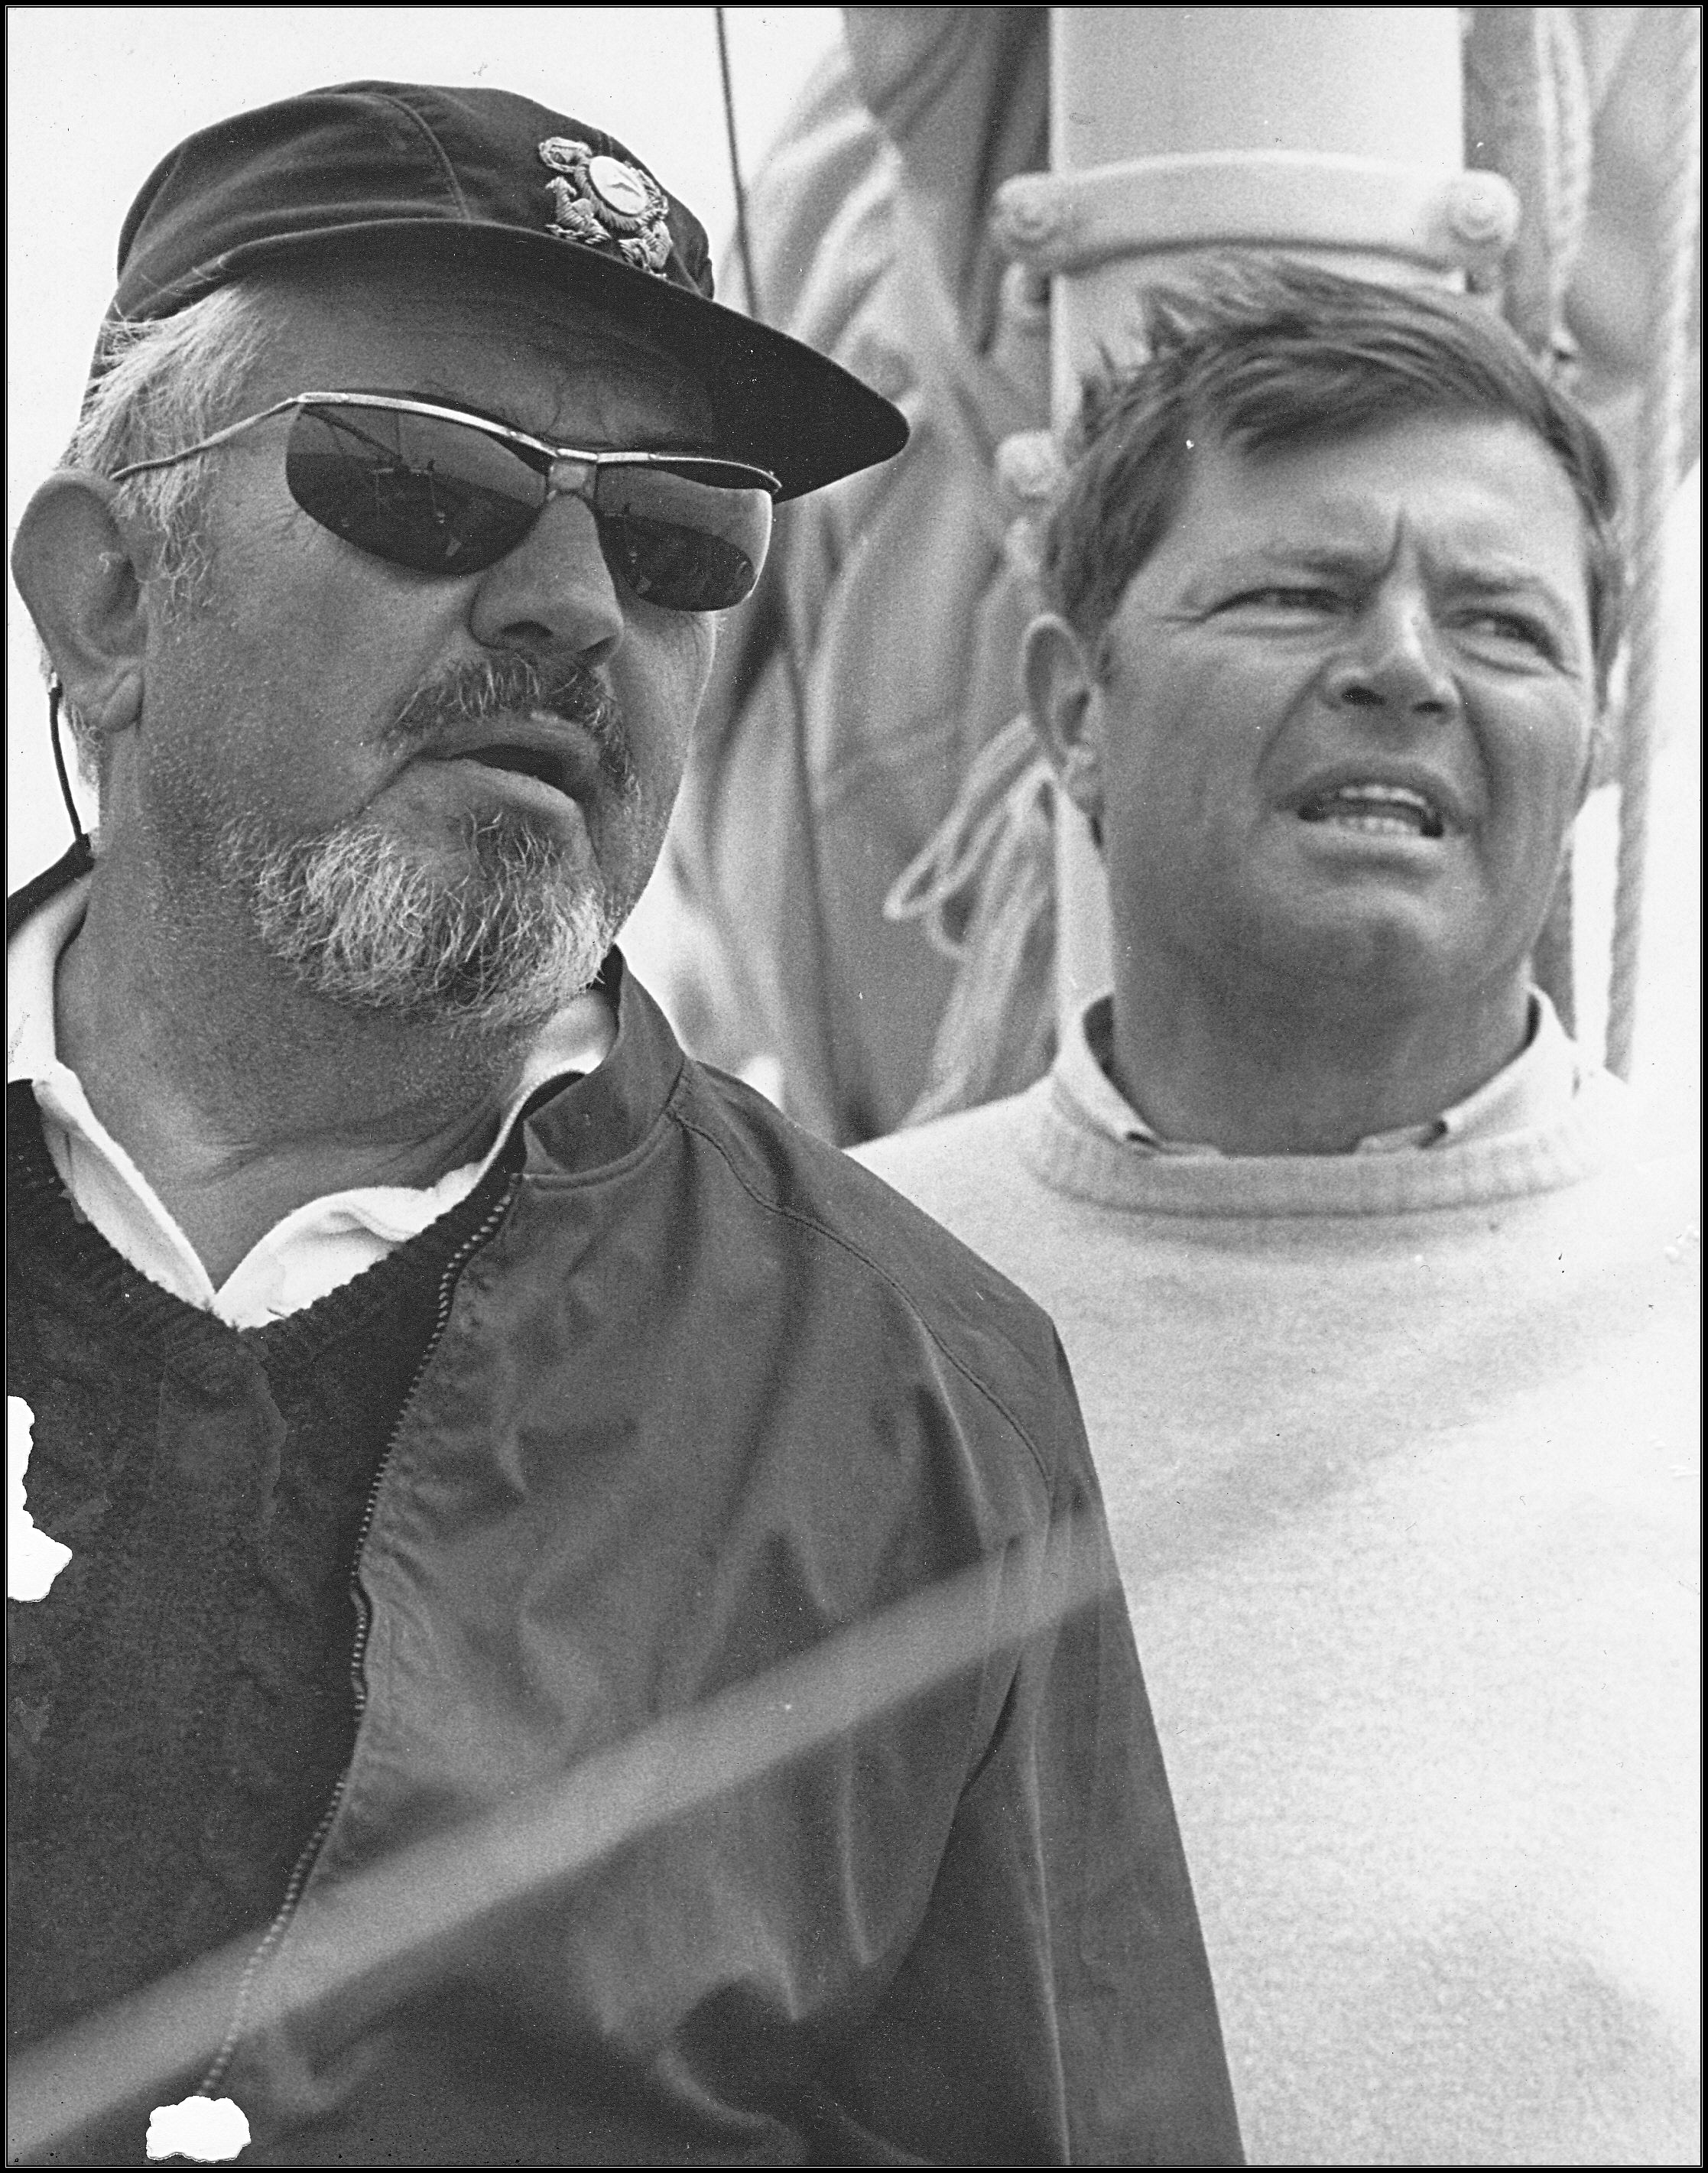 C. Bissell and B. Lowry on board sailboat Windigo.